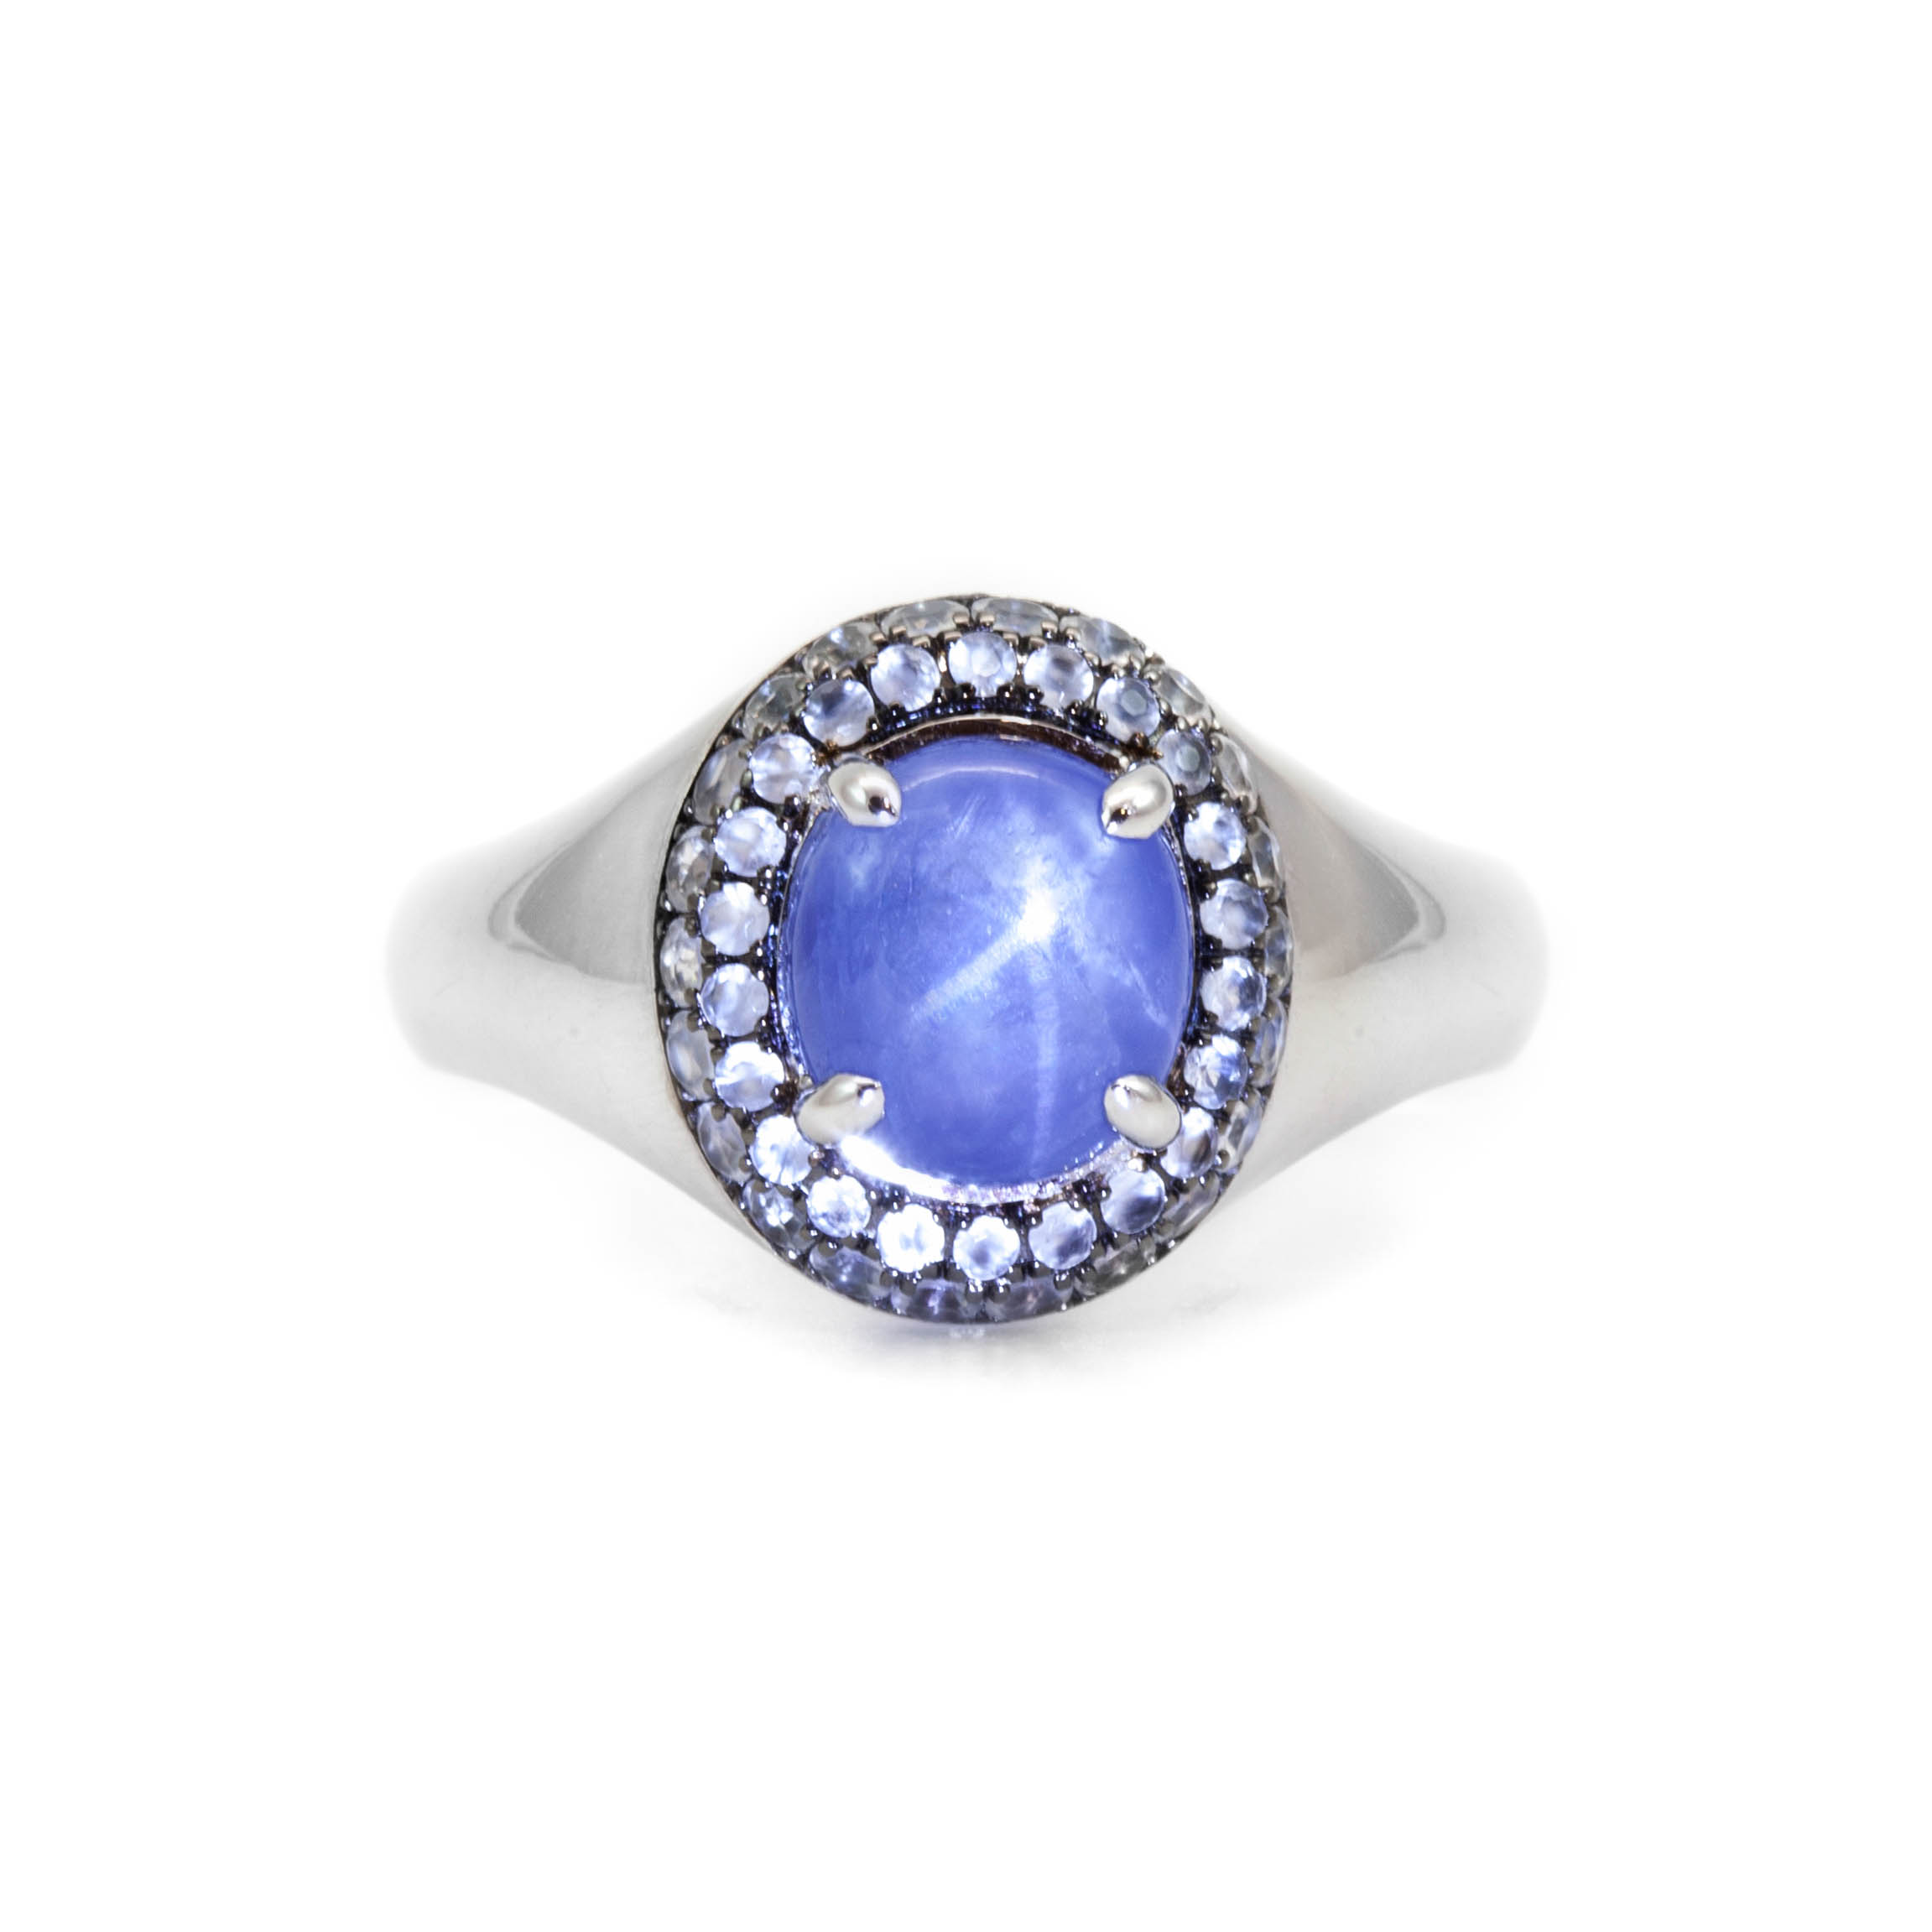 side your x colored stones platinum ct for rings round setting diamonds engagement three blue unheated contemporary best sapphire international article mm ring in gemstones a stone the